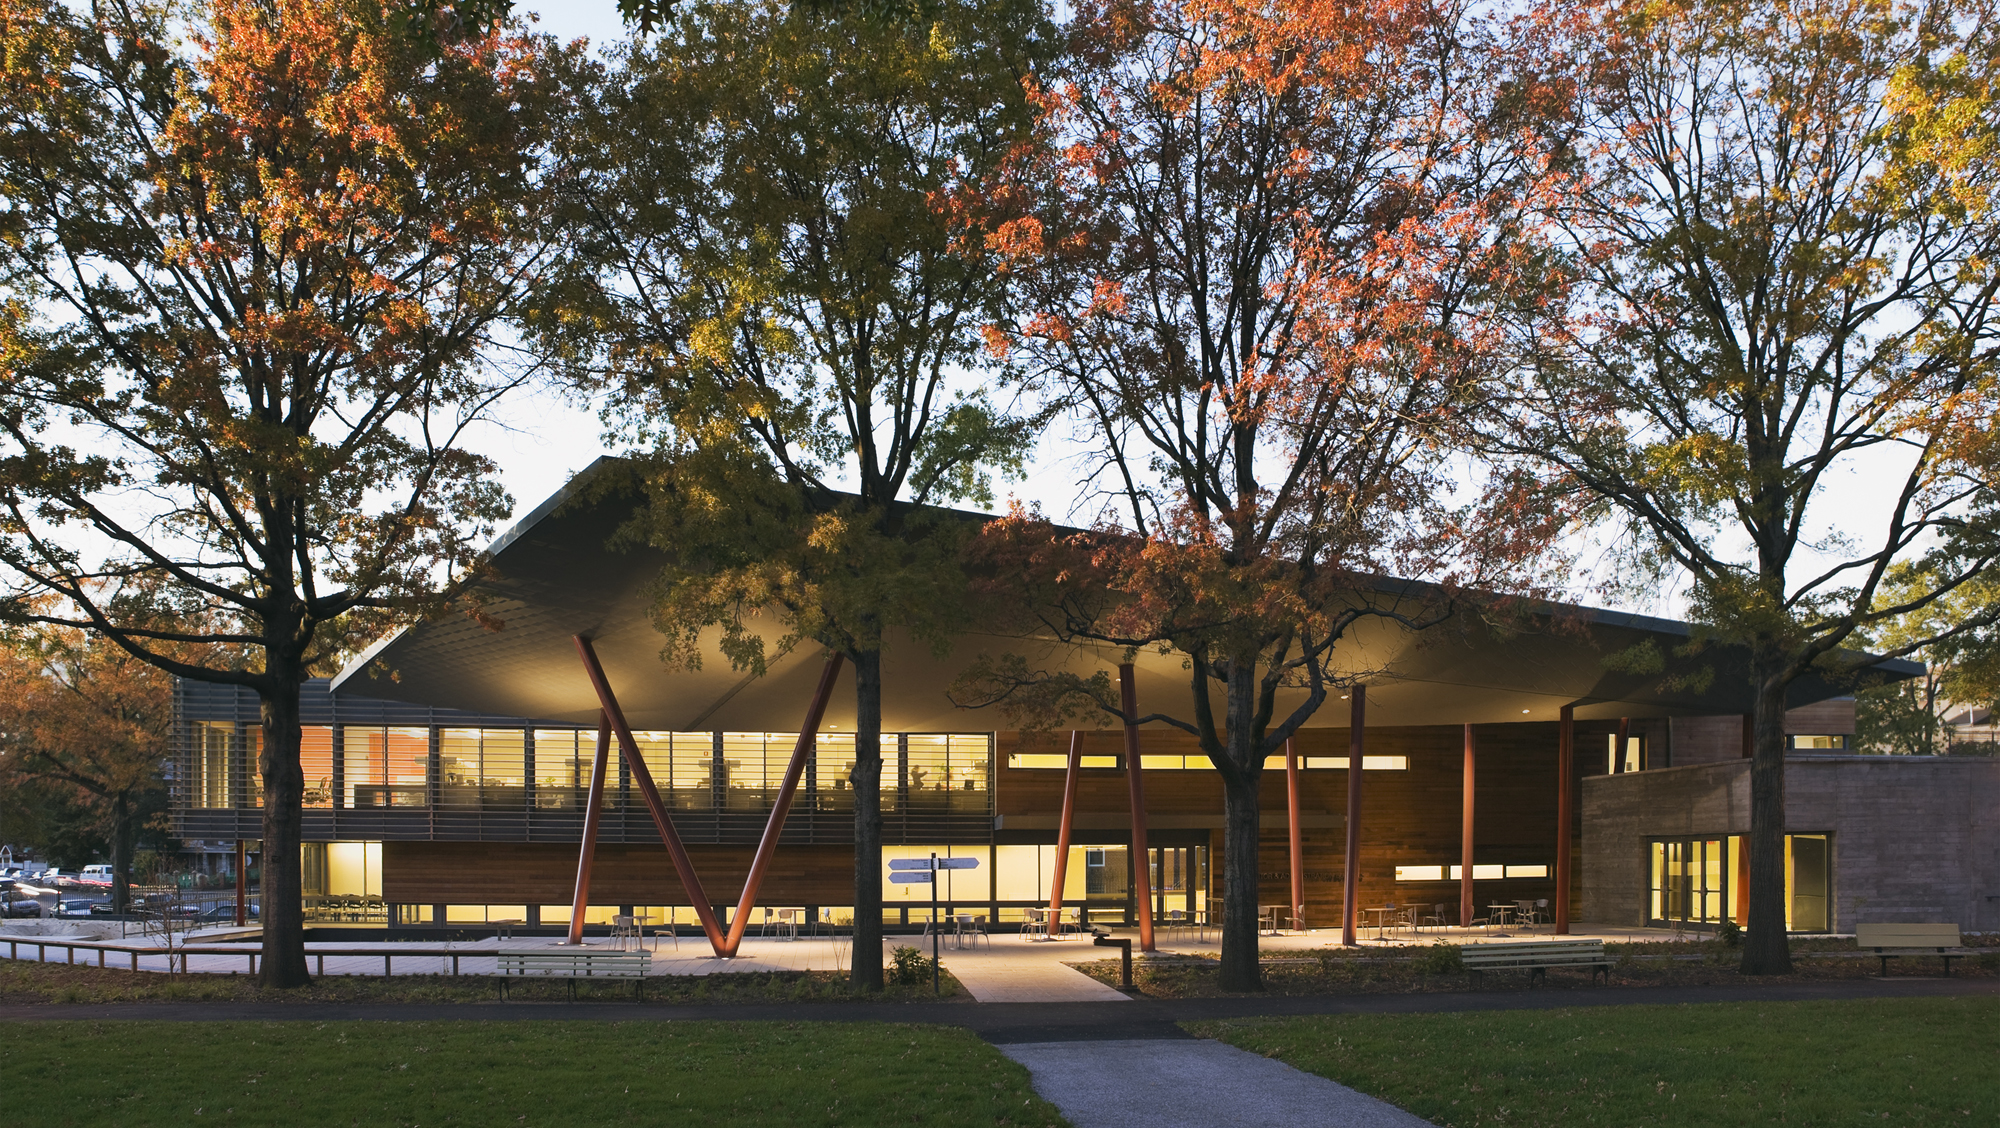 Queens botanical garden visitor administration center - Garden state healthcare associates ...